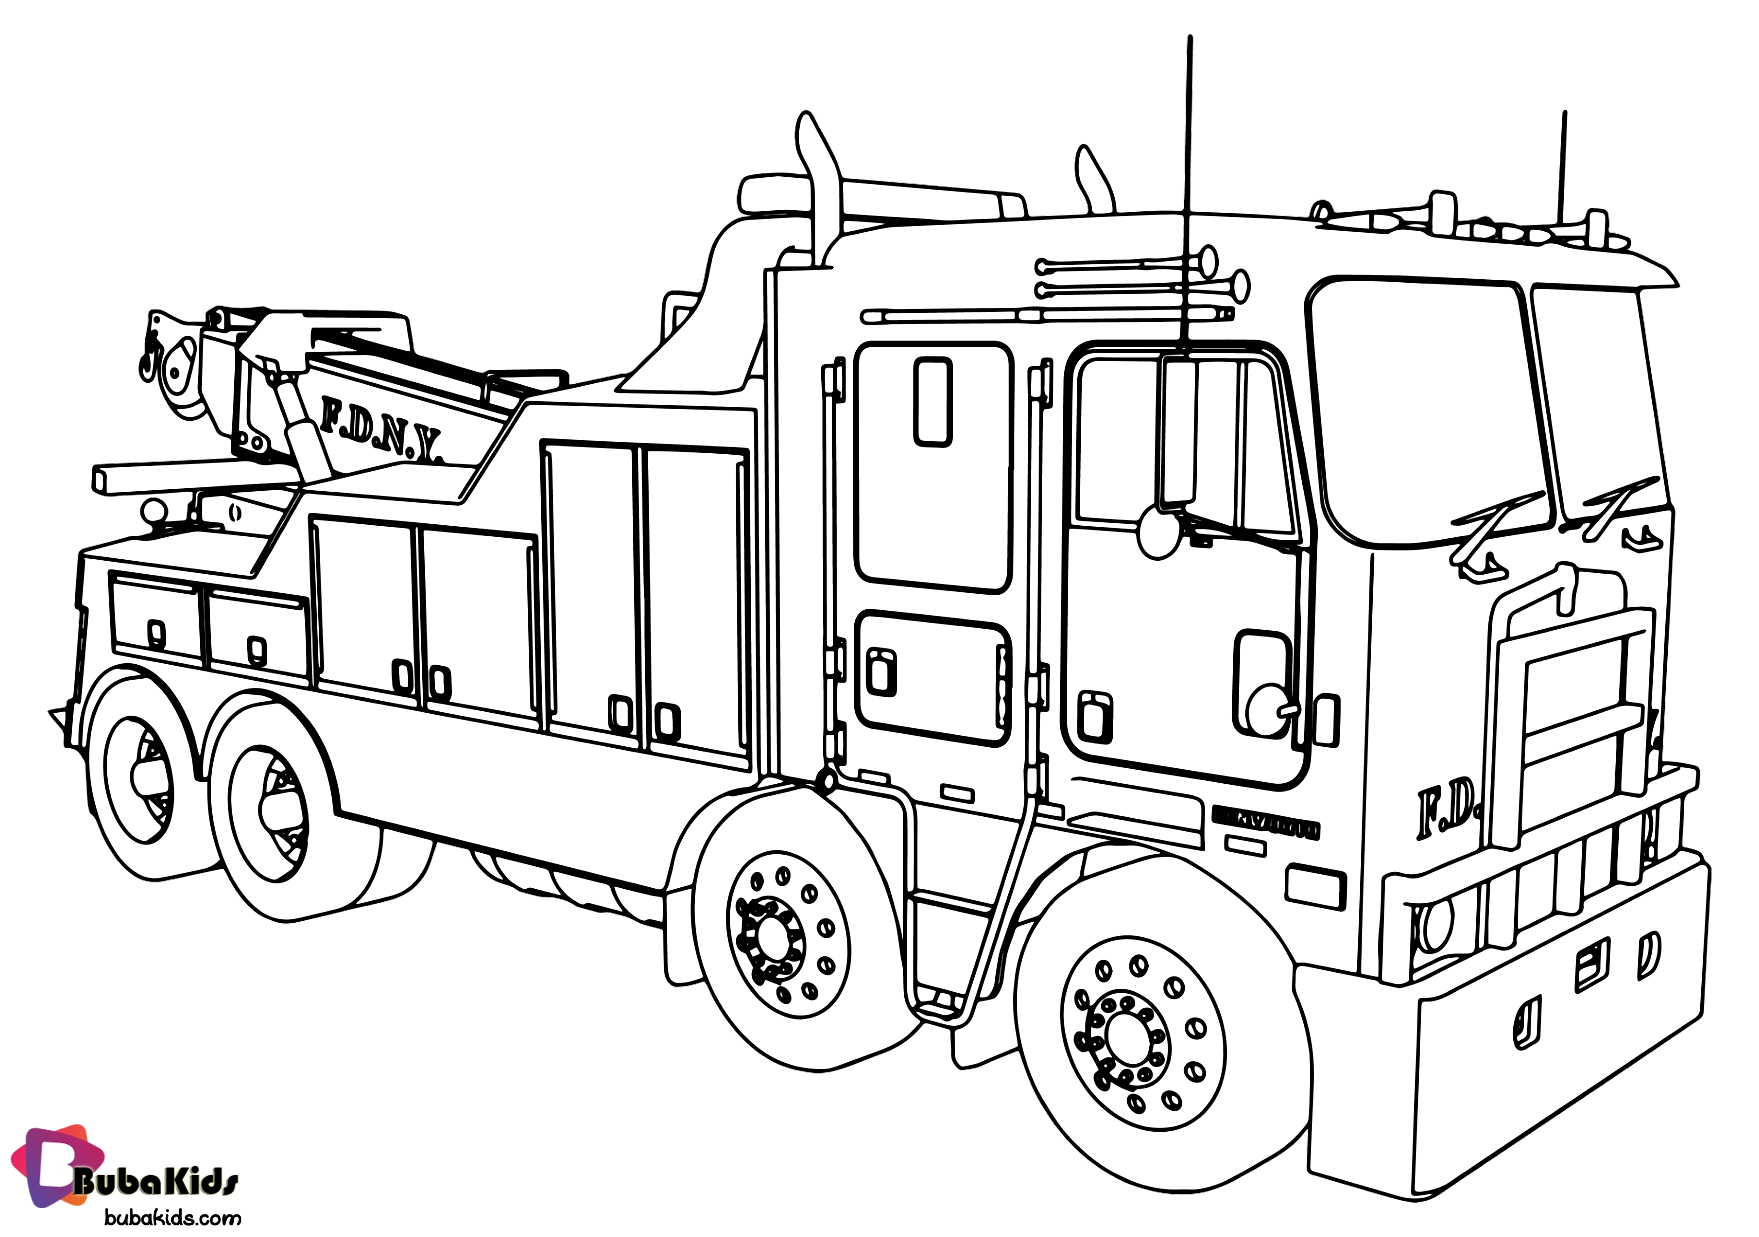 Fire engine fire truck coloring page in 2020 | Truck ...